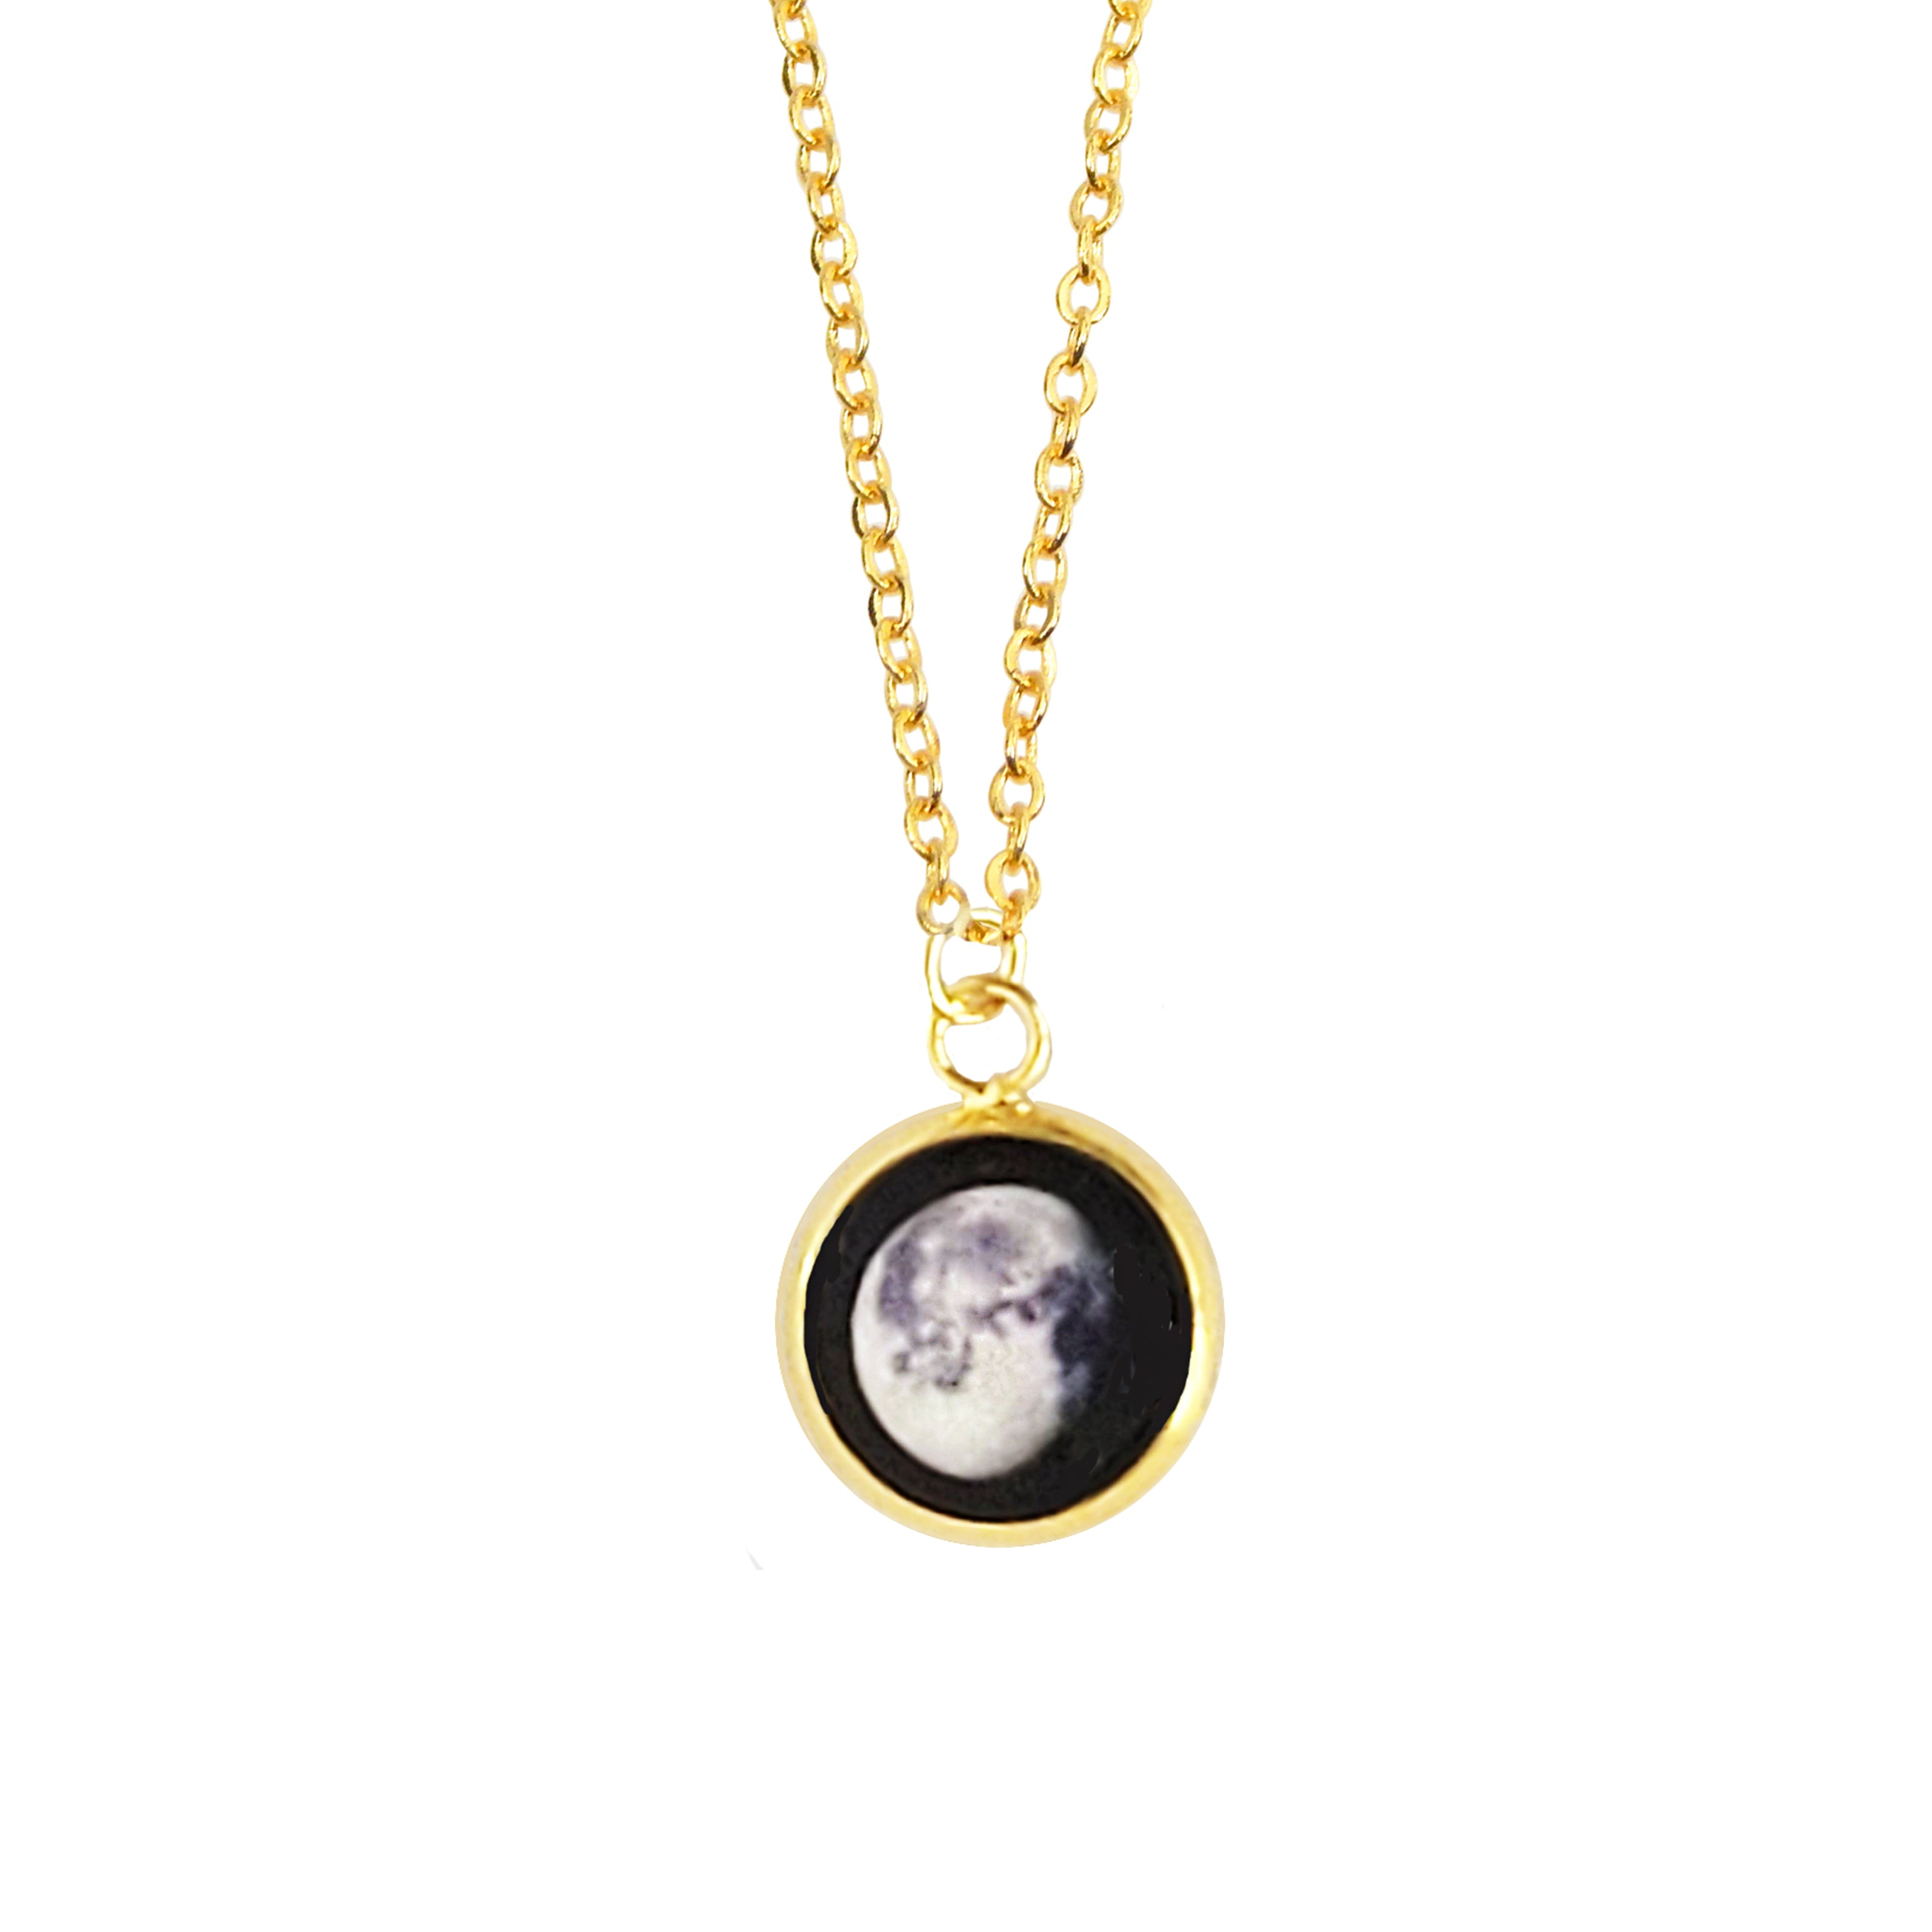 Glowing Moon Phase Necklace in Gold Plating